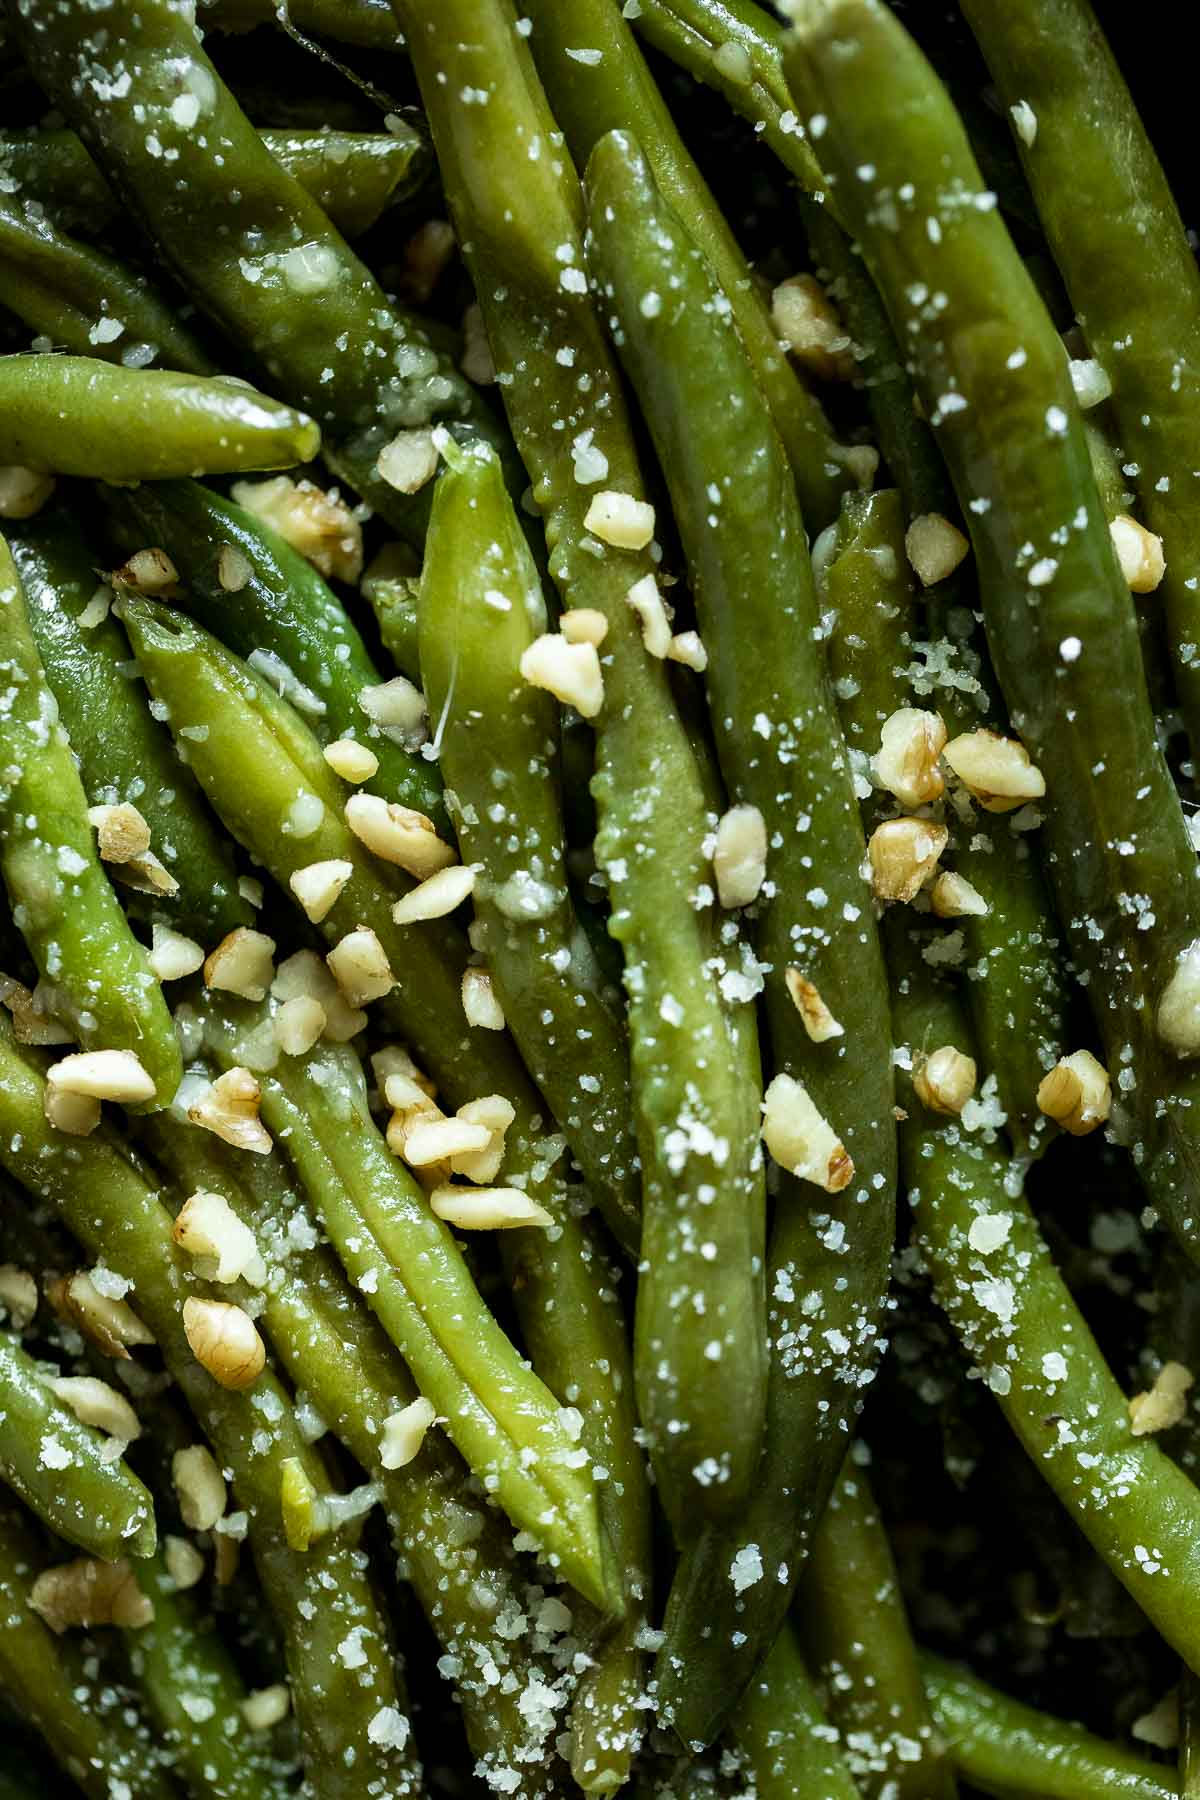 Up close view of green beans topped with walnuts and parmesan cheese.